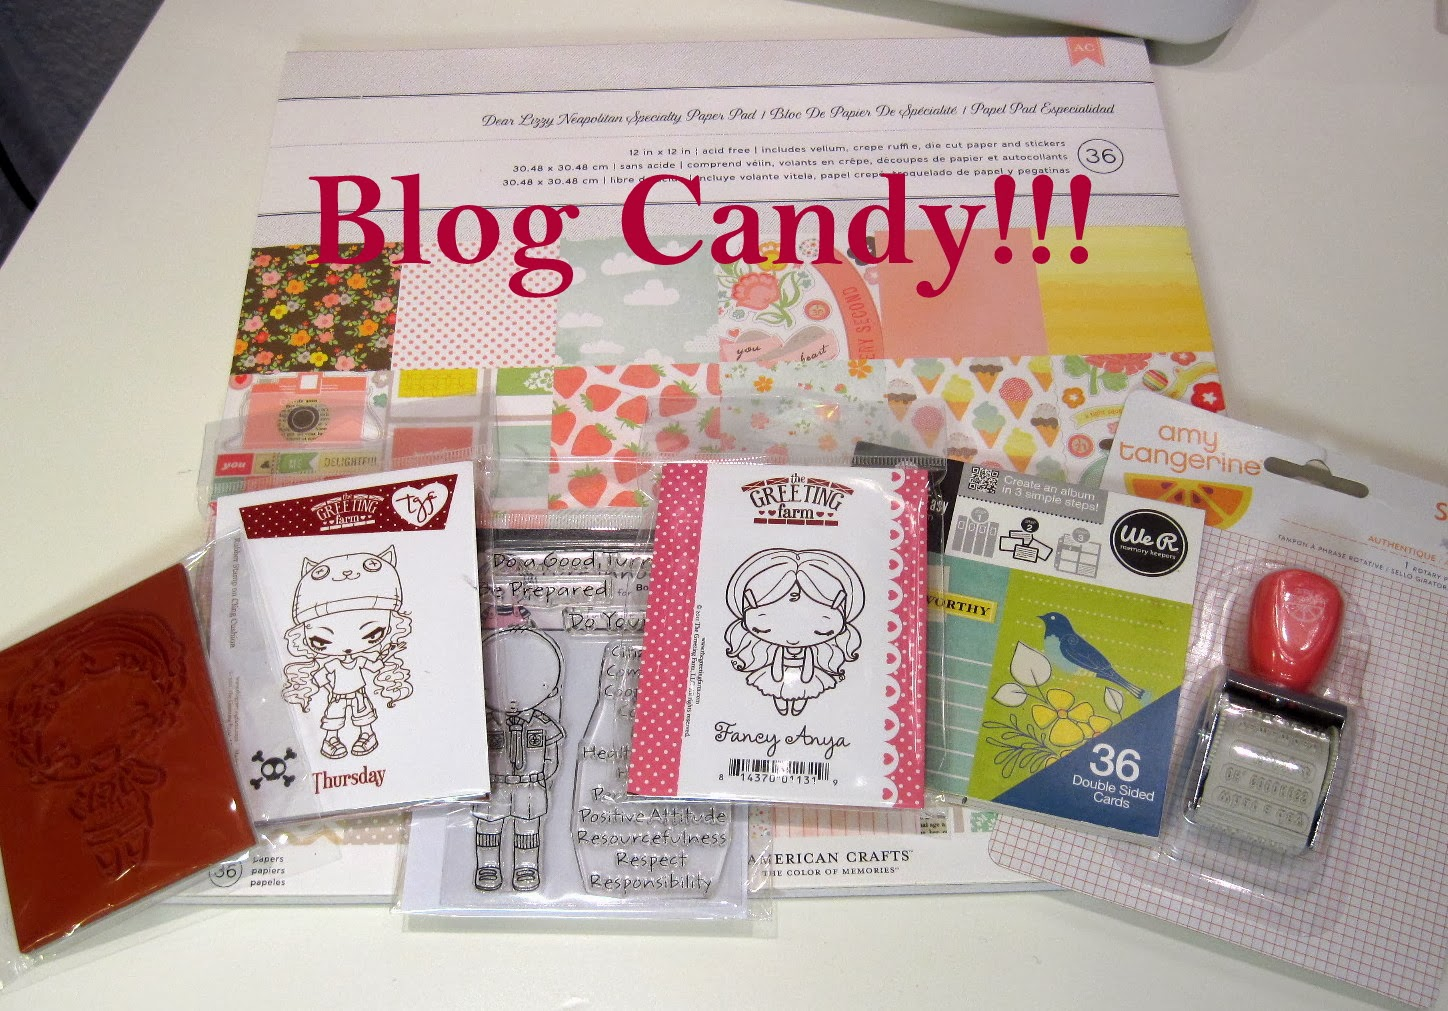 Christmas Blogcandy Rachel!!